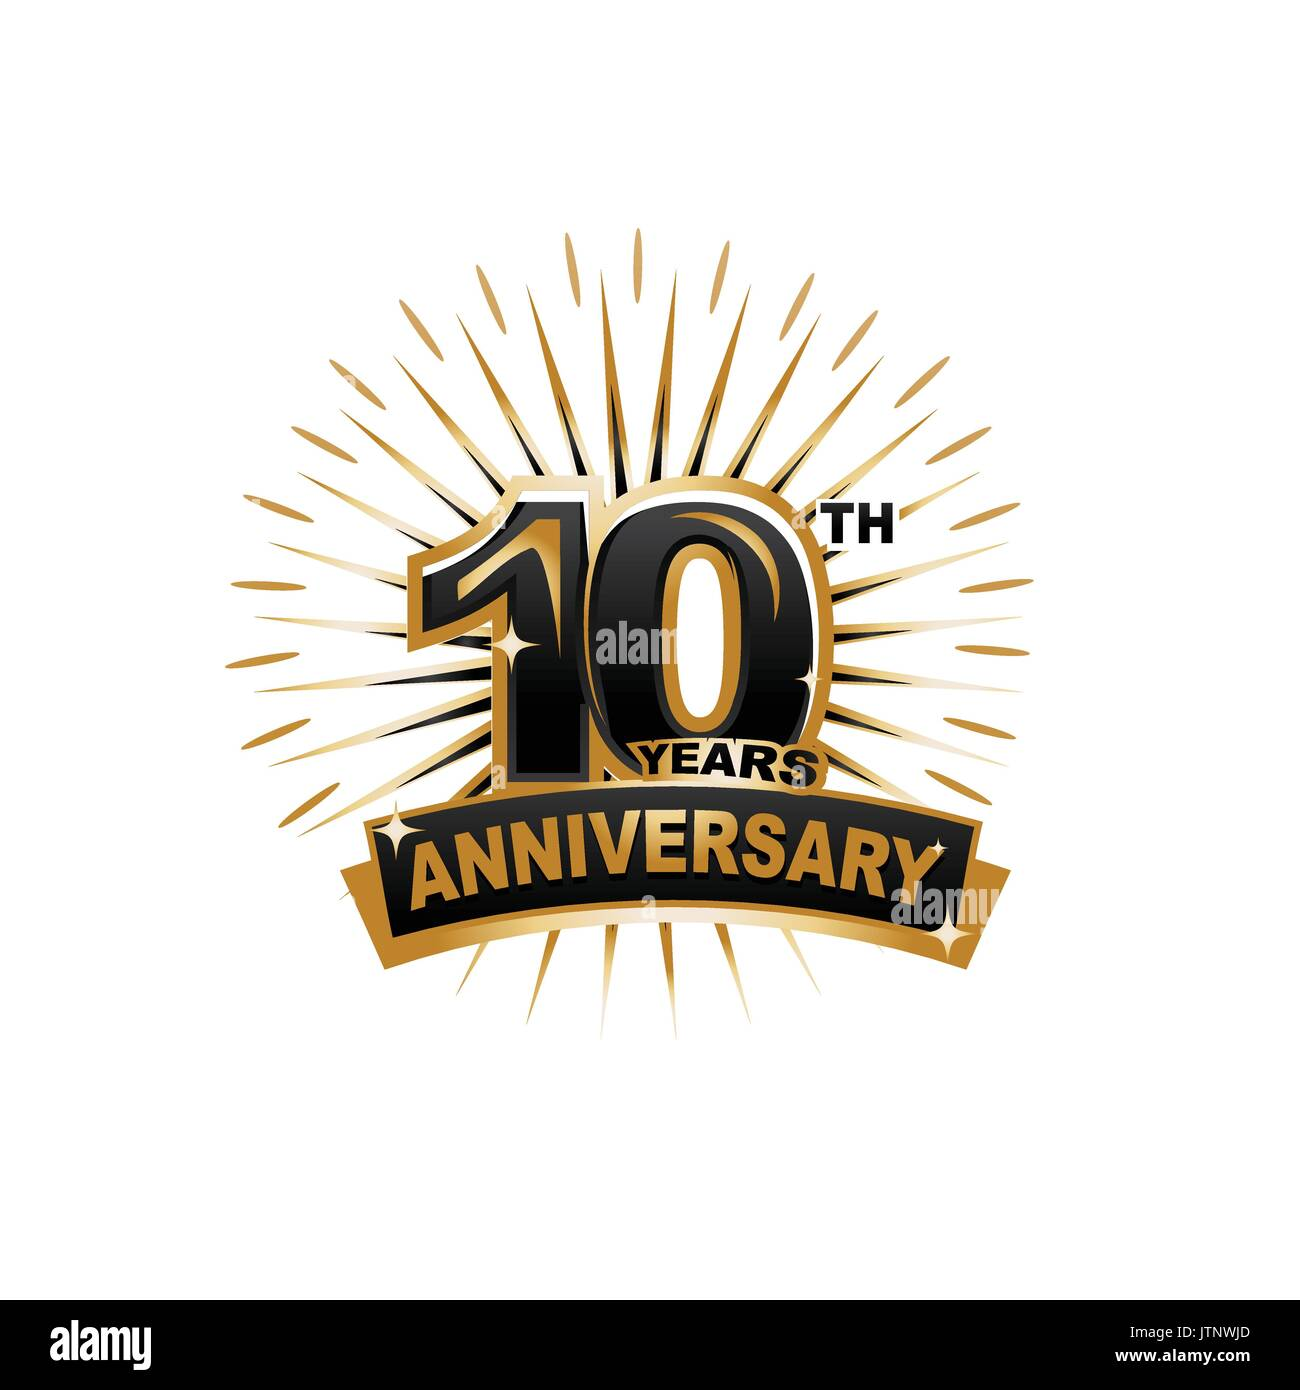 ten years anniversary, gold badge, illustration design, isolated on white background. - Stock Vector